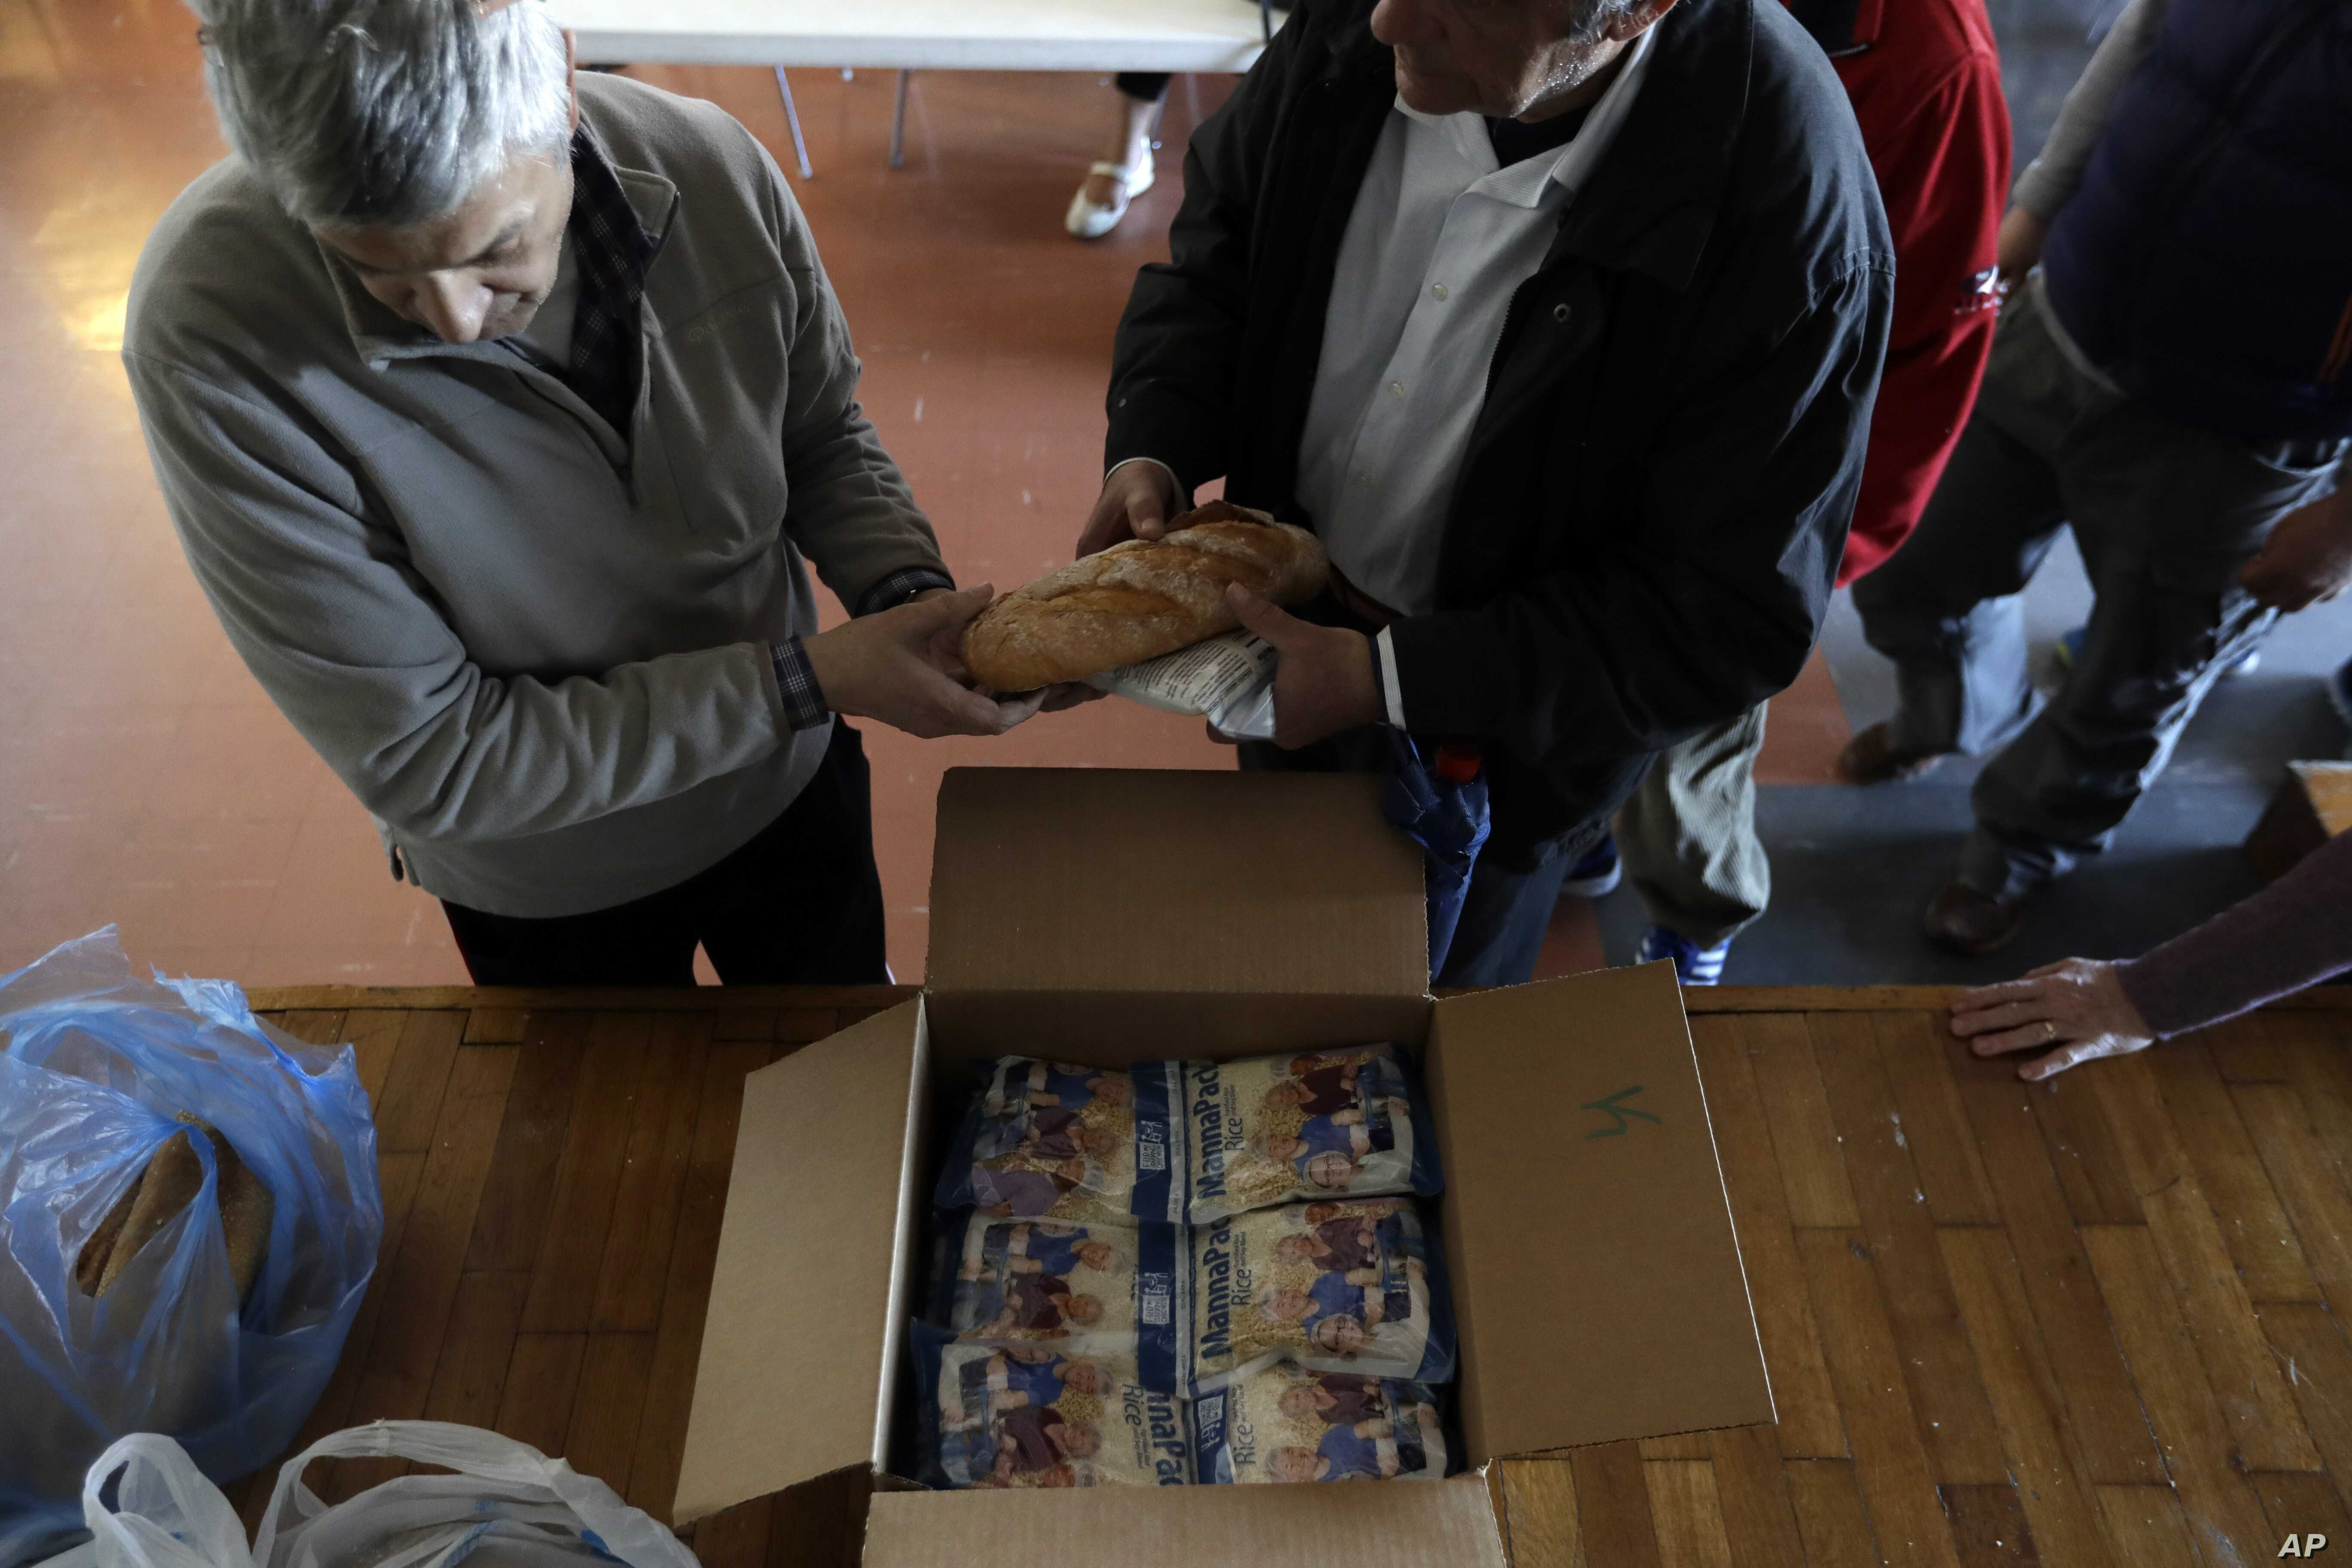 A volunteer delivers bread and other supplies to homeless persons at the ''Shelter of Love and Solidarity'' in central Athens, April 25, 2017.